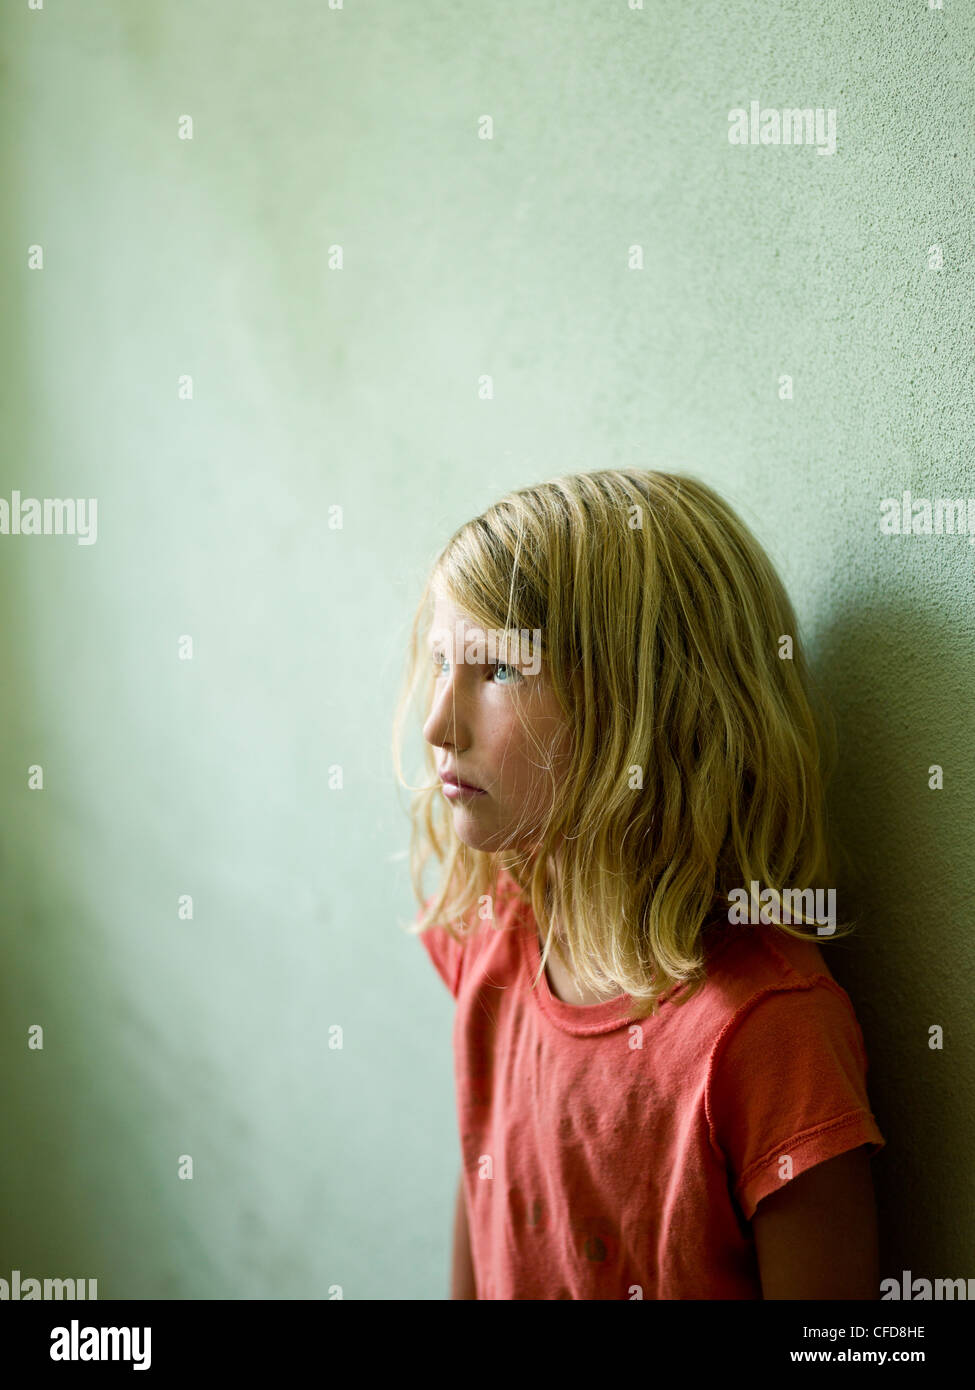 a girl poses leans against the wall looking up to the ceiling - Stock Image